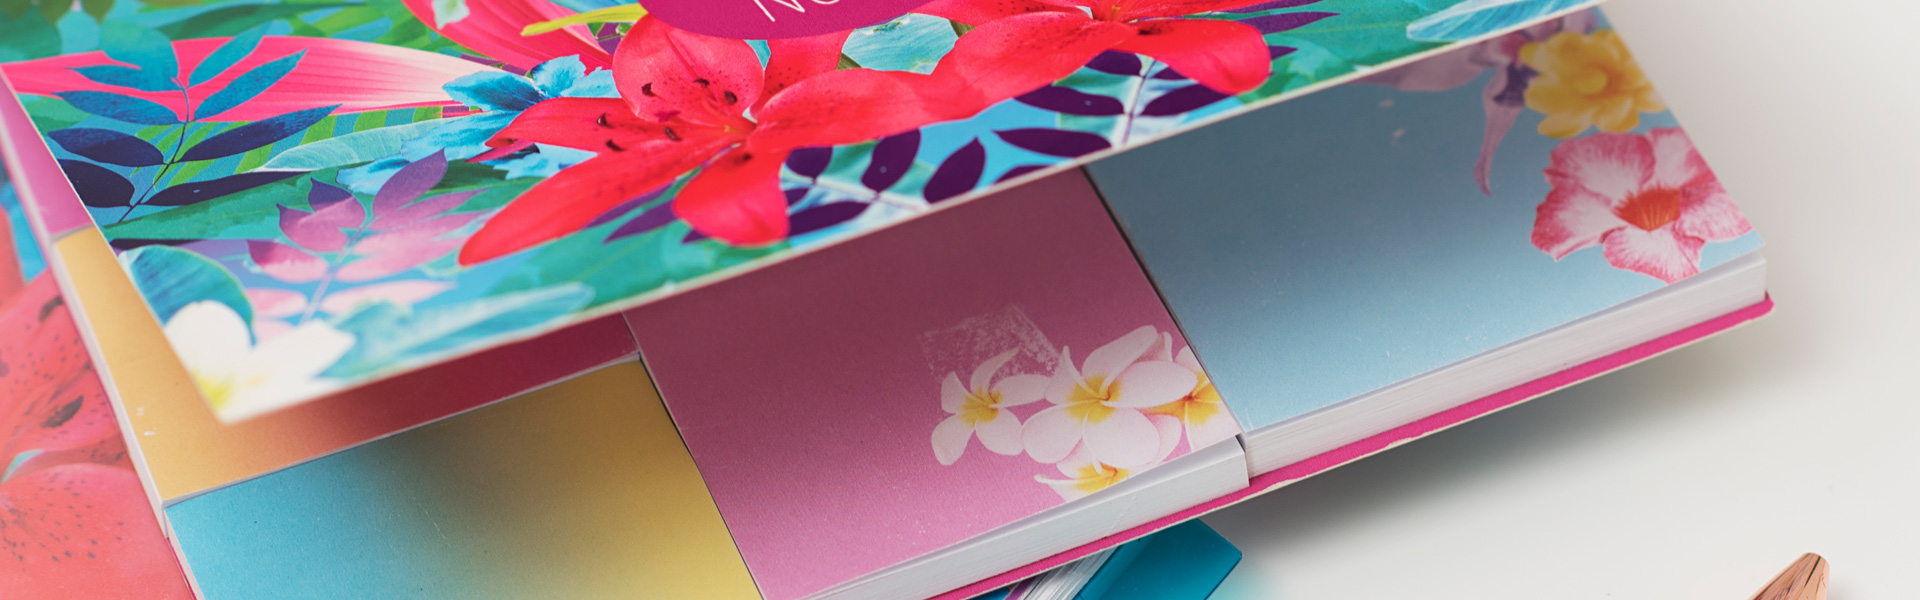 New! Give Your Desk a Tropical Twist with our Tropique Stationery